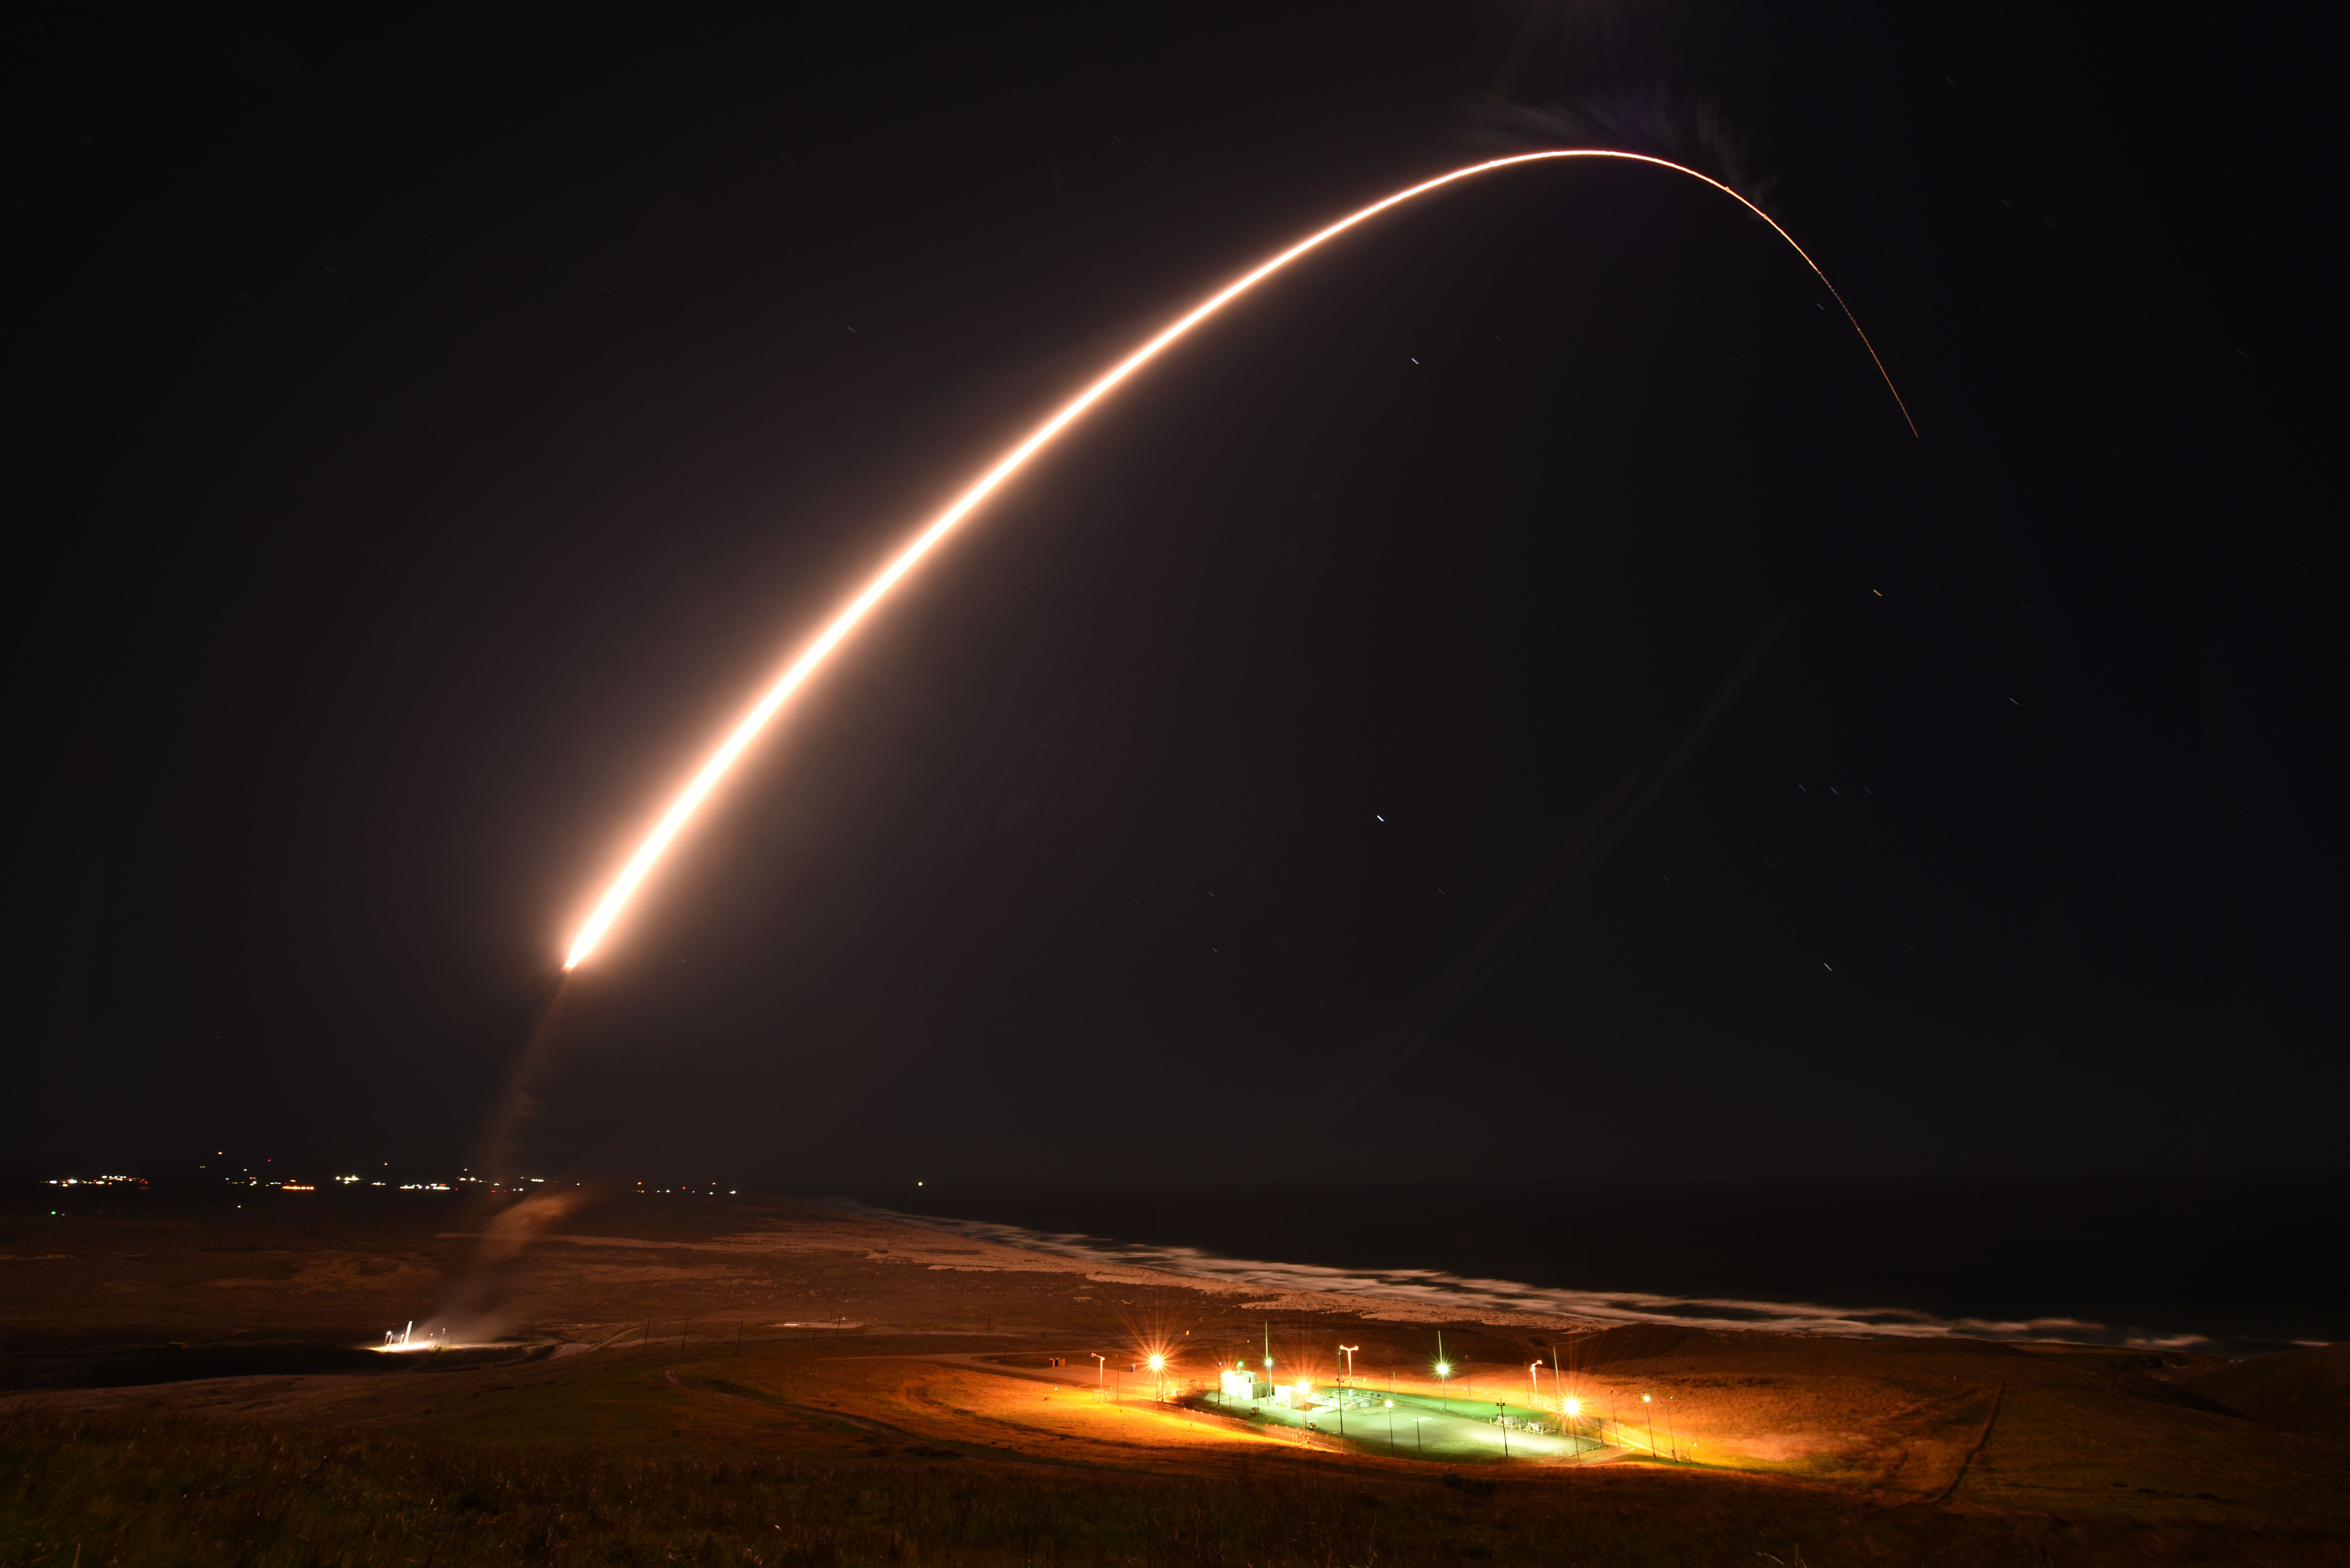 Air Force aborts test launch of unarmed Minuteman III nuclear missile